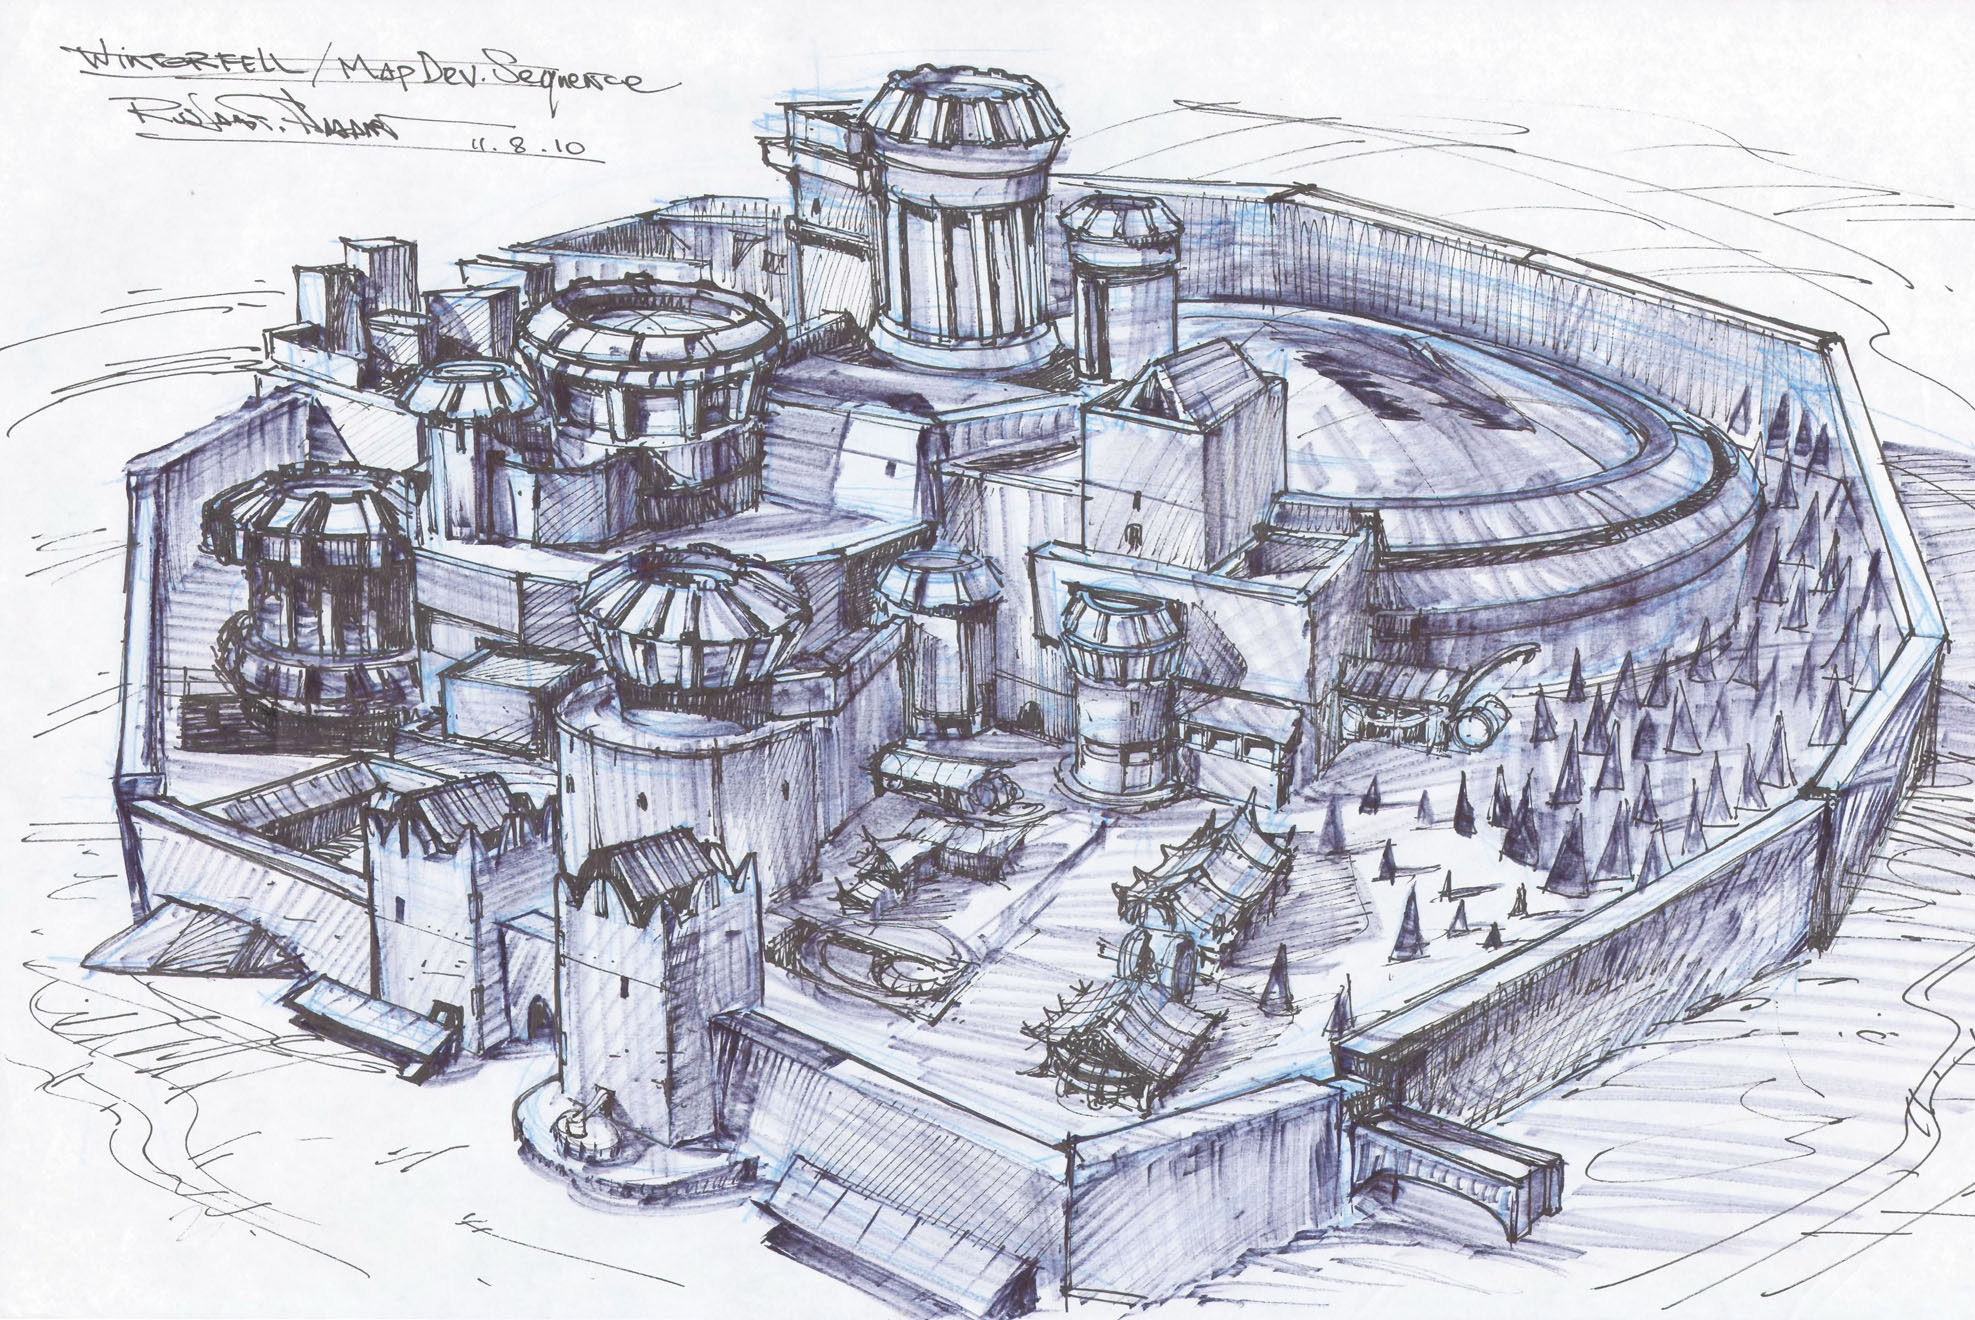 Gallery For gt Winterfell Map